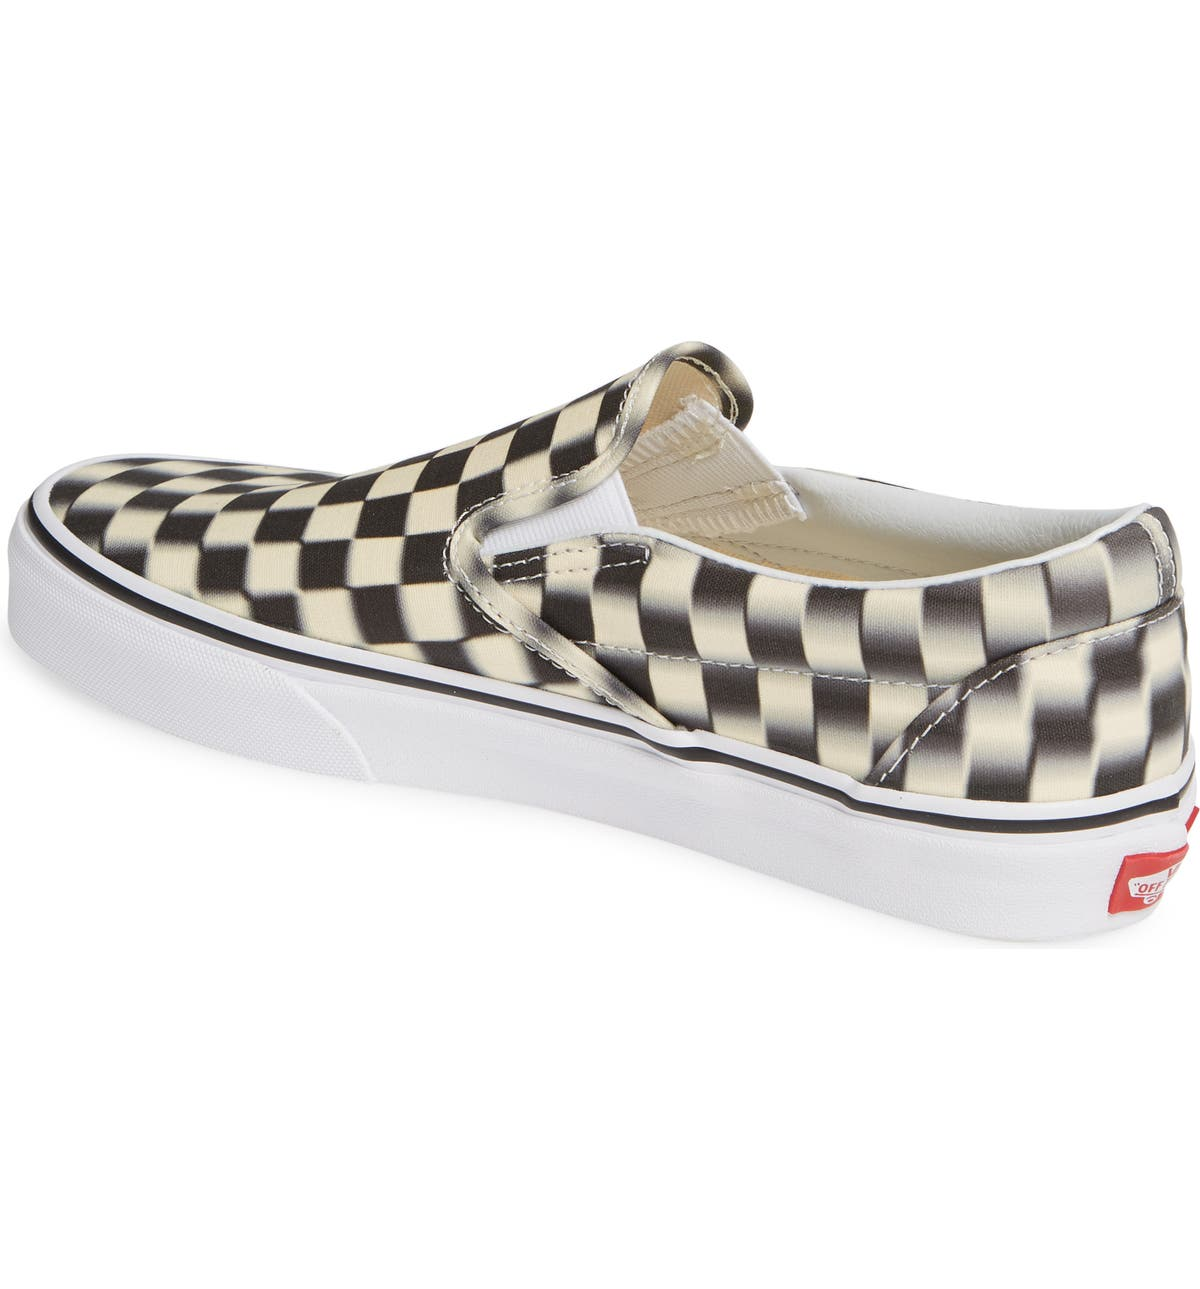 37fcbf099290bb Vans Classic Slip-On Sneaker (Women)